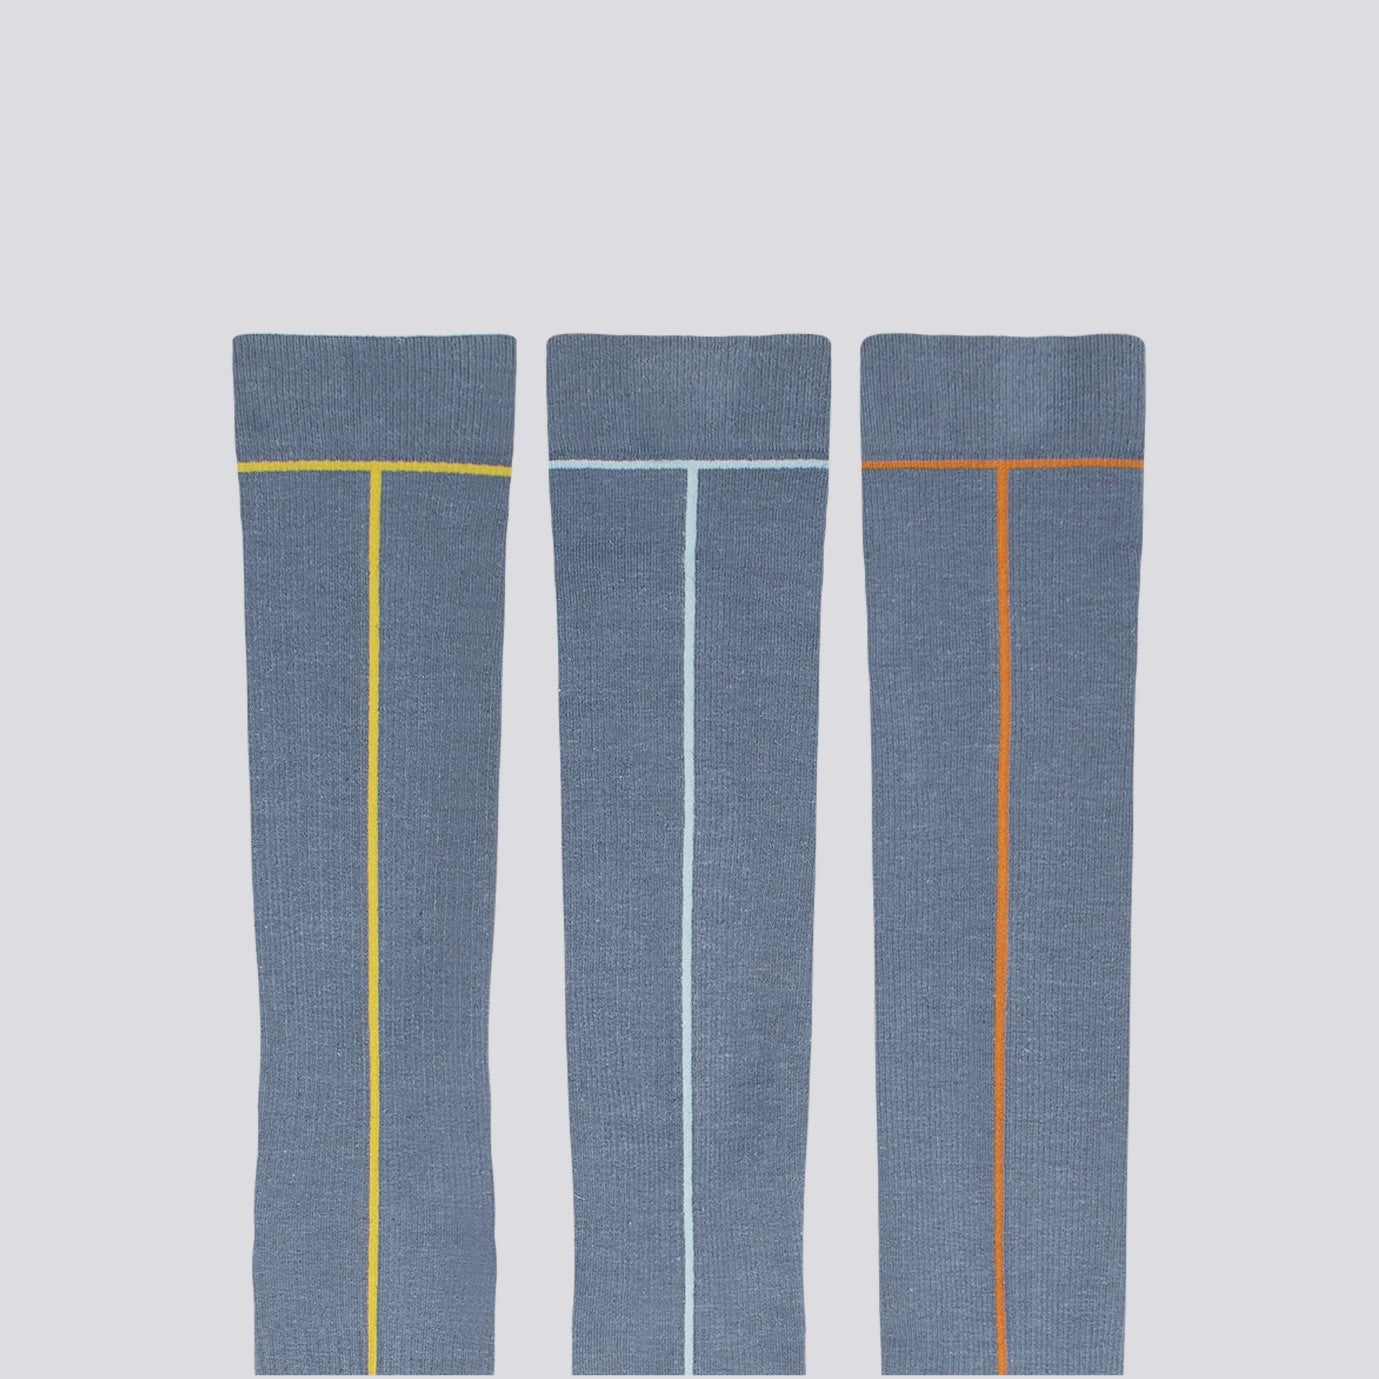 Hemp Compression Socks, Flat lay, 3 Colorways Ensign Blue with Line Pattern Colour Oil Yellow Sea Angel Spice Route | SHIN JARDBO